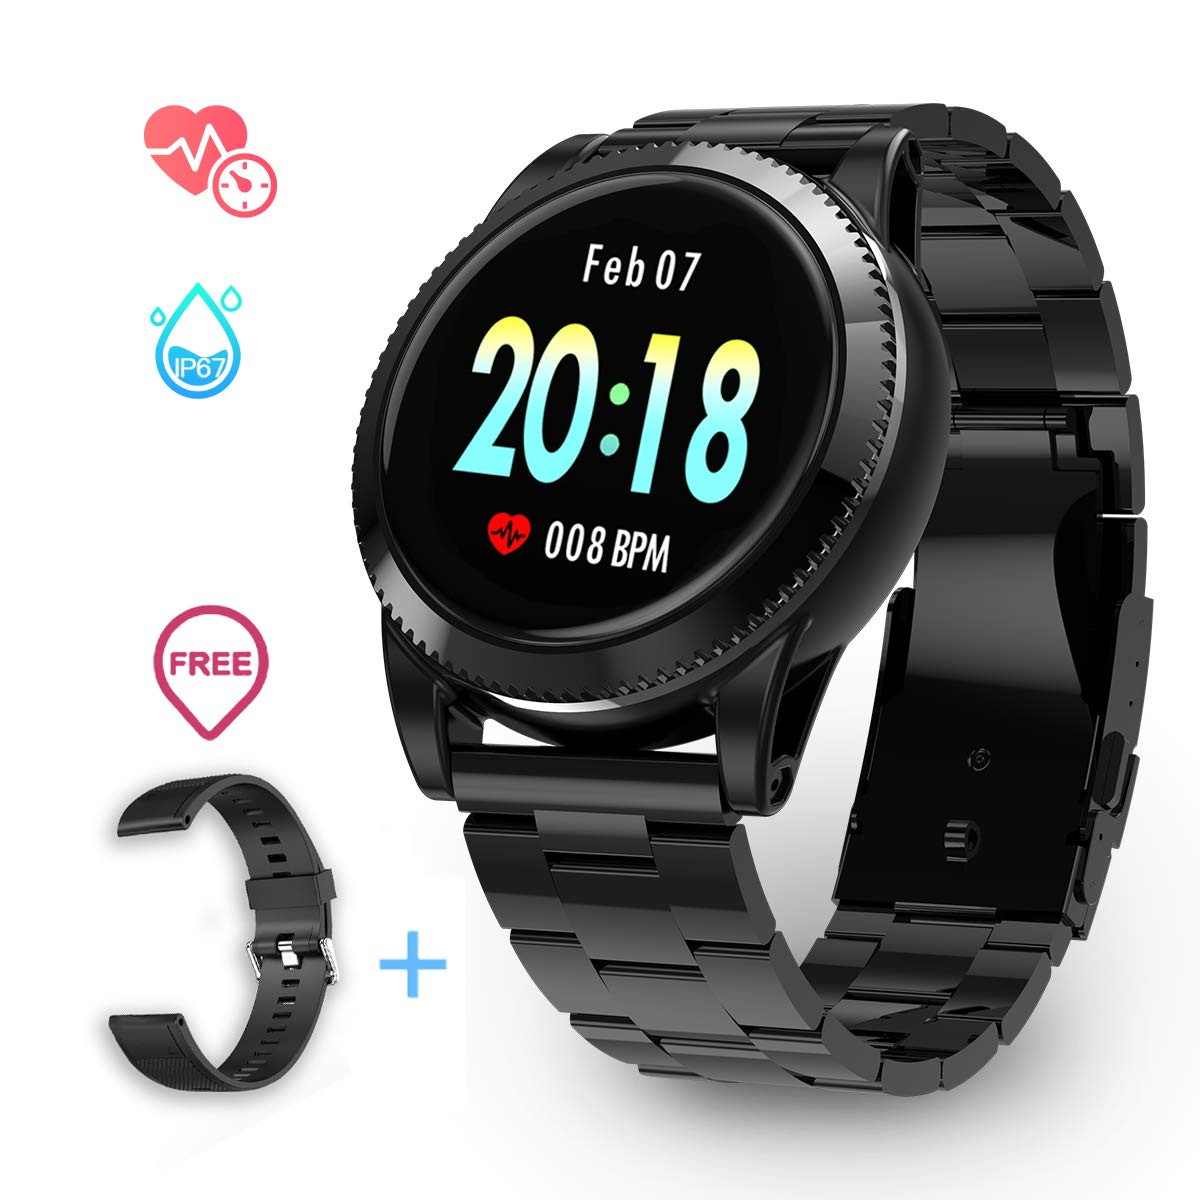 Smart Watch for Men Women, GOKOO Sports Smartwatch Fitness Tracker with Pedometer Notifications Music Control Blood Pressure Heart Rate Monitor Camera Touch Screen Watch for Android Phones iPhones